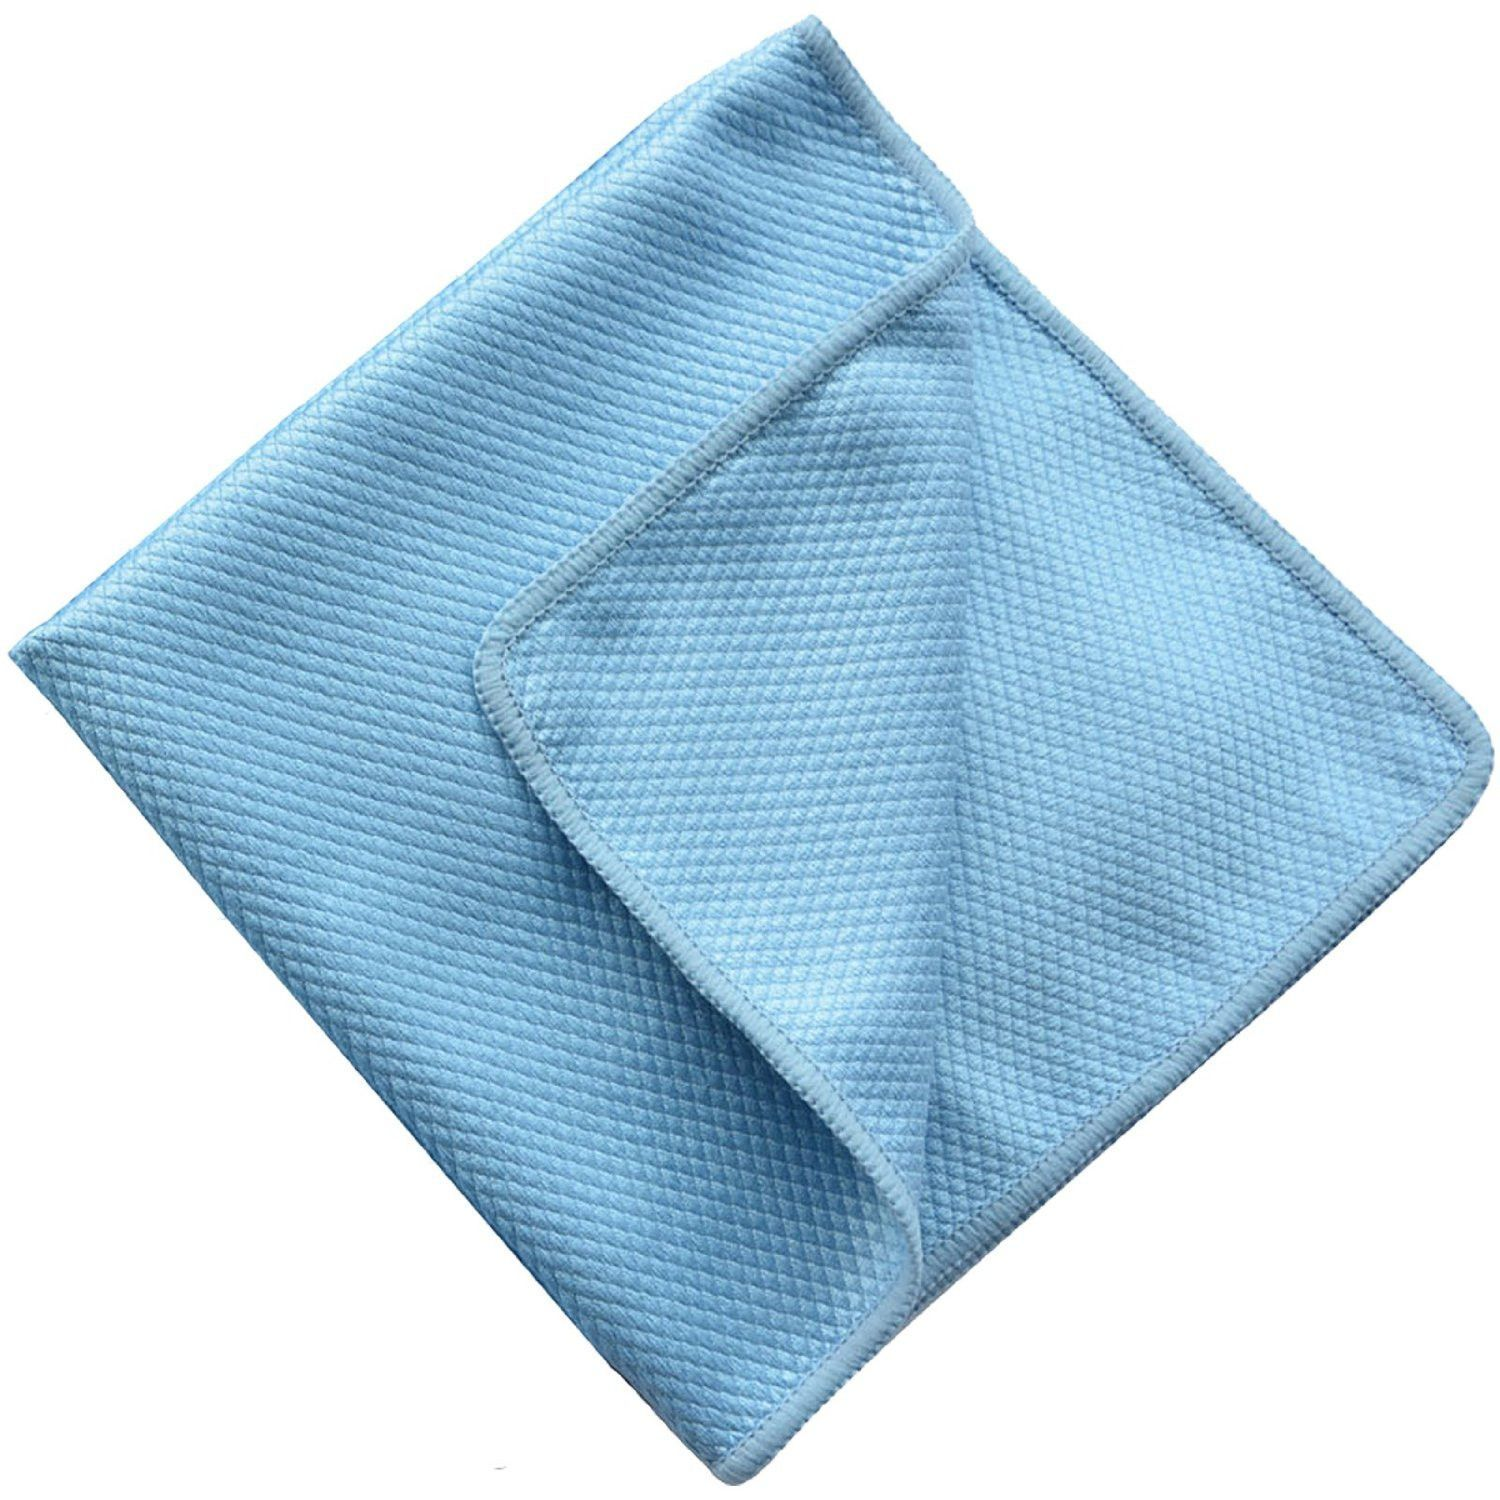 Microfiber Cleaning Cloth - Household Wipes And Cloths - Polish ...